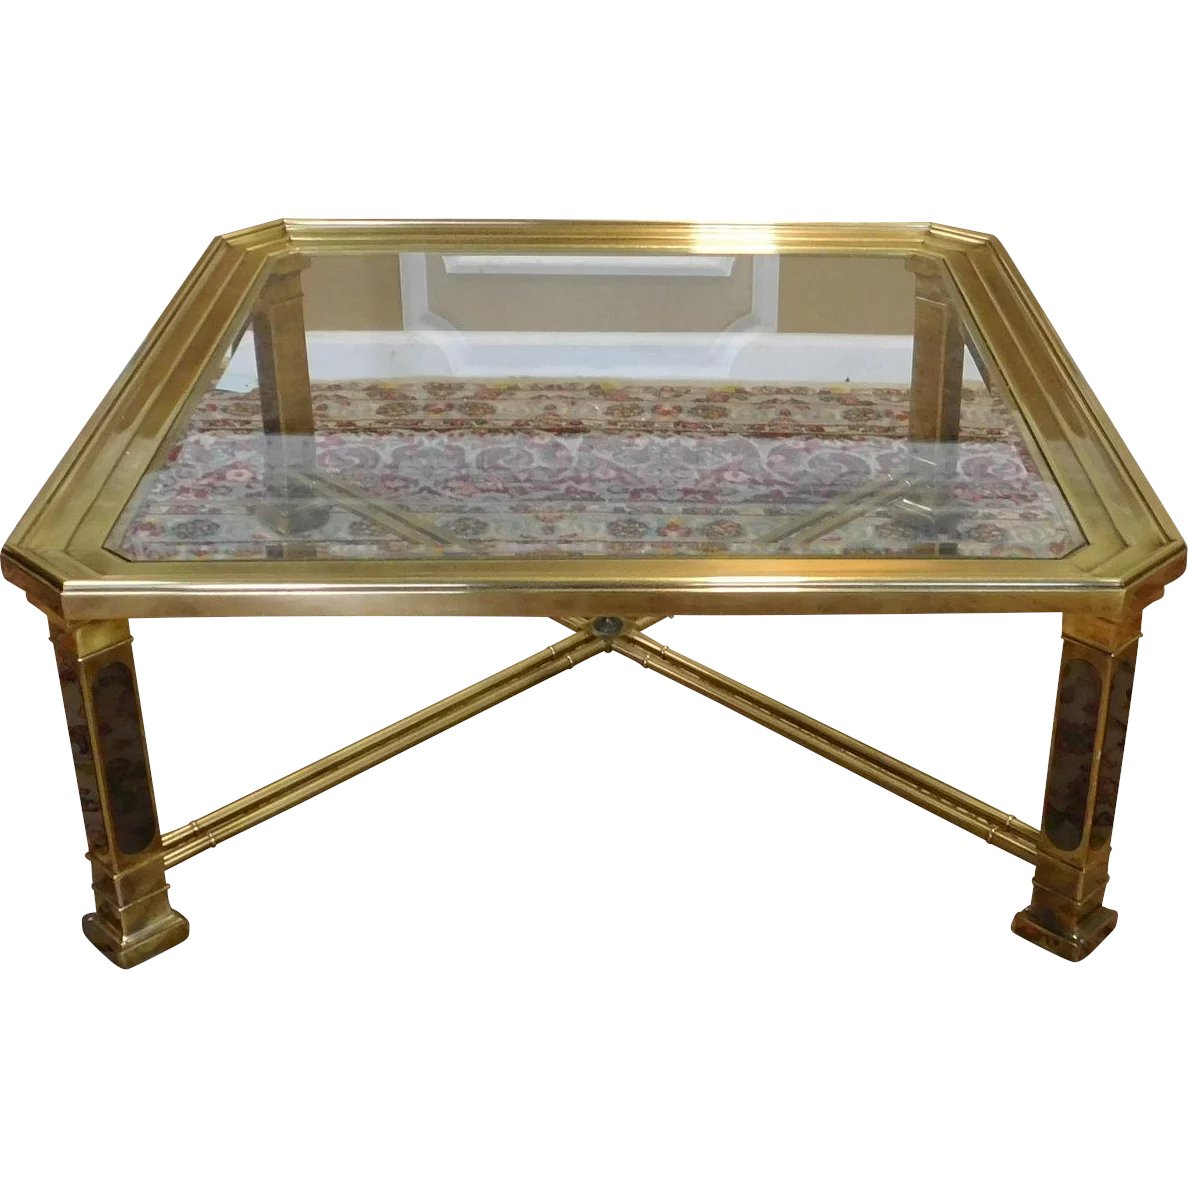 40 Metal Square Coffee Tables: 1980s Contemporary Brass & Glass Square Coffee Table 40 X